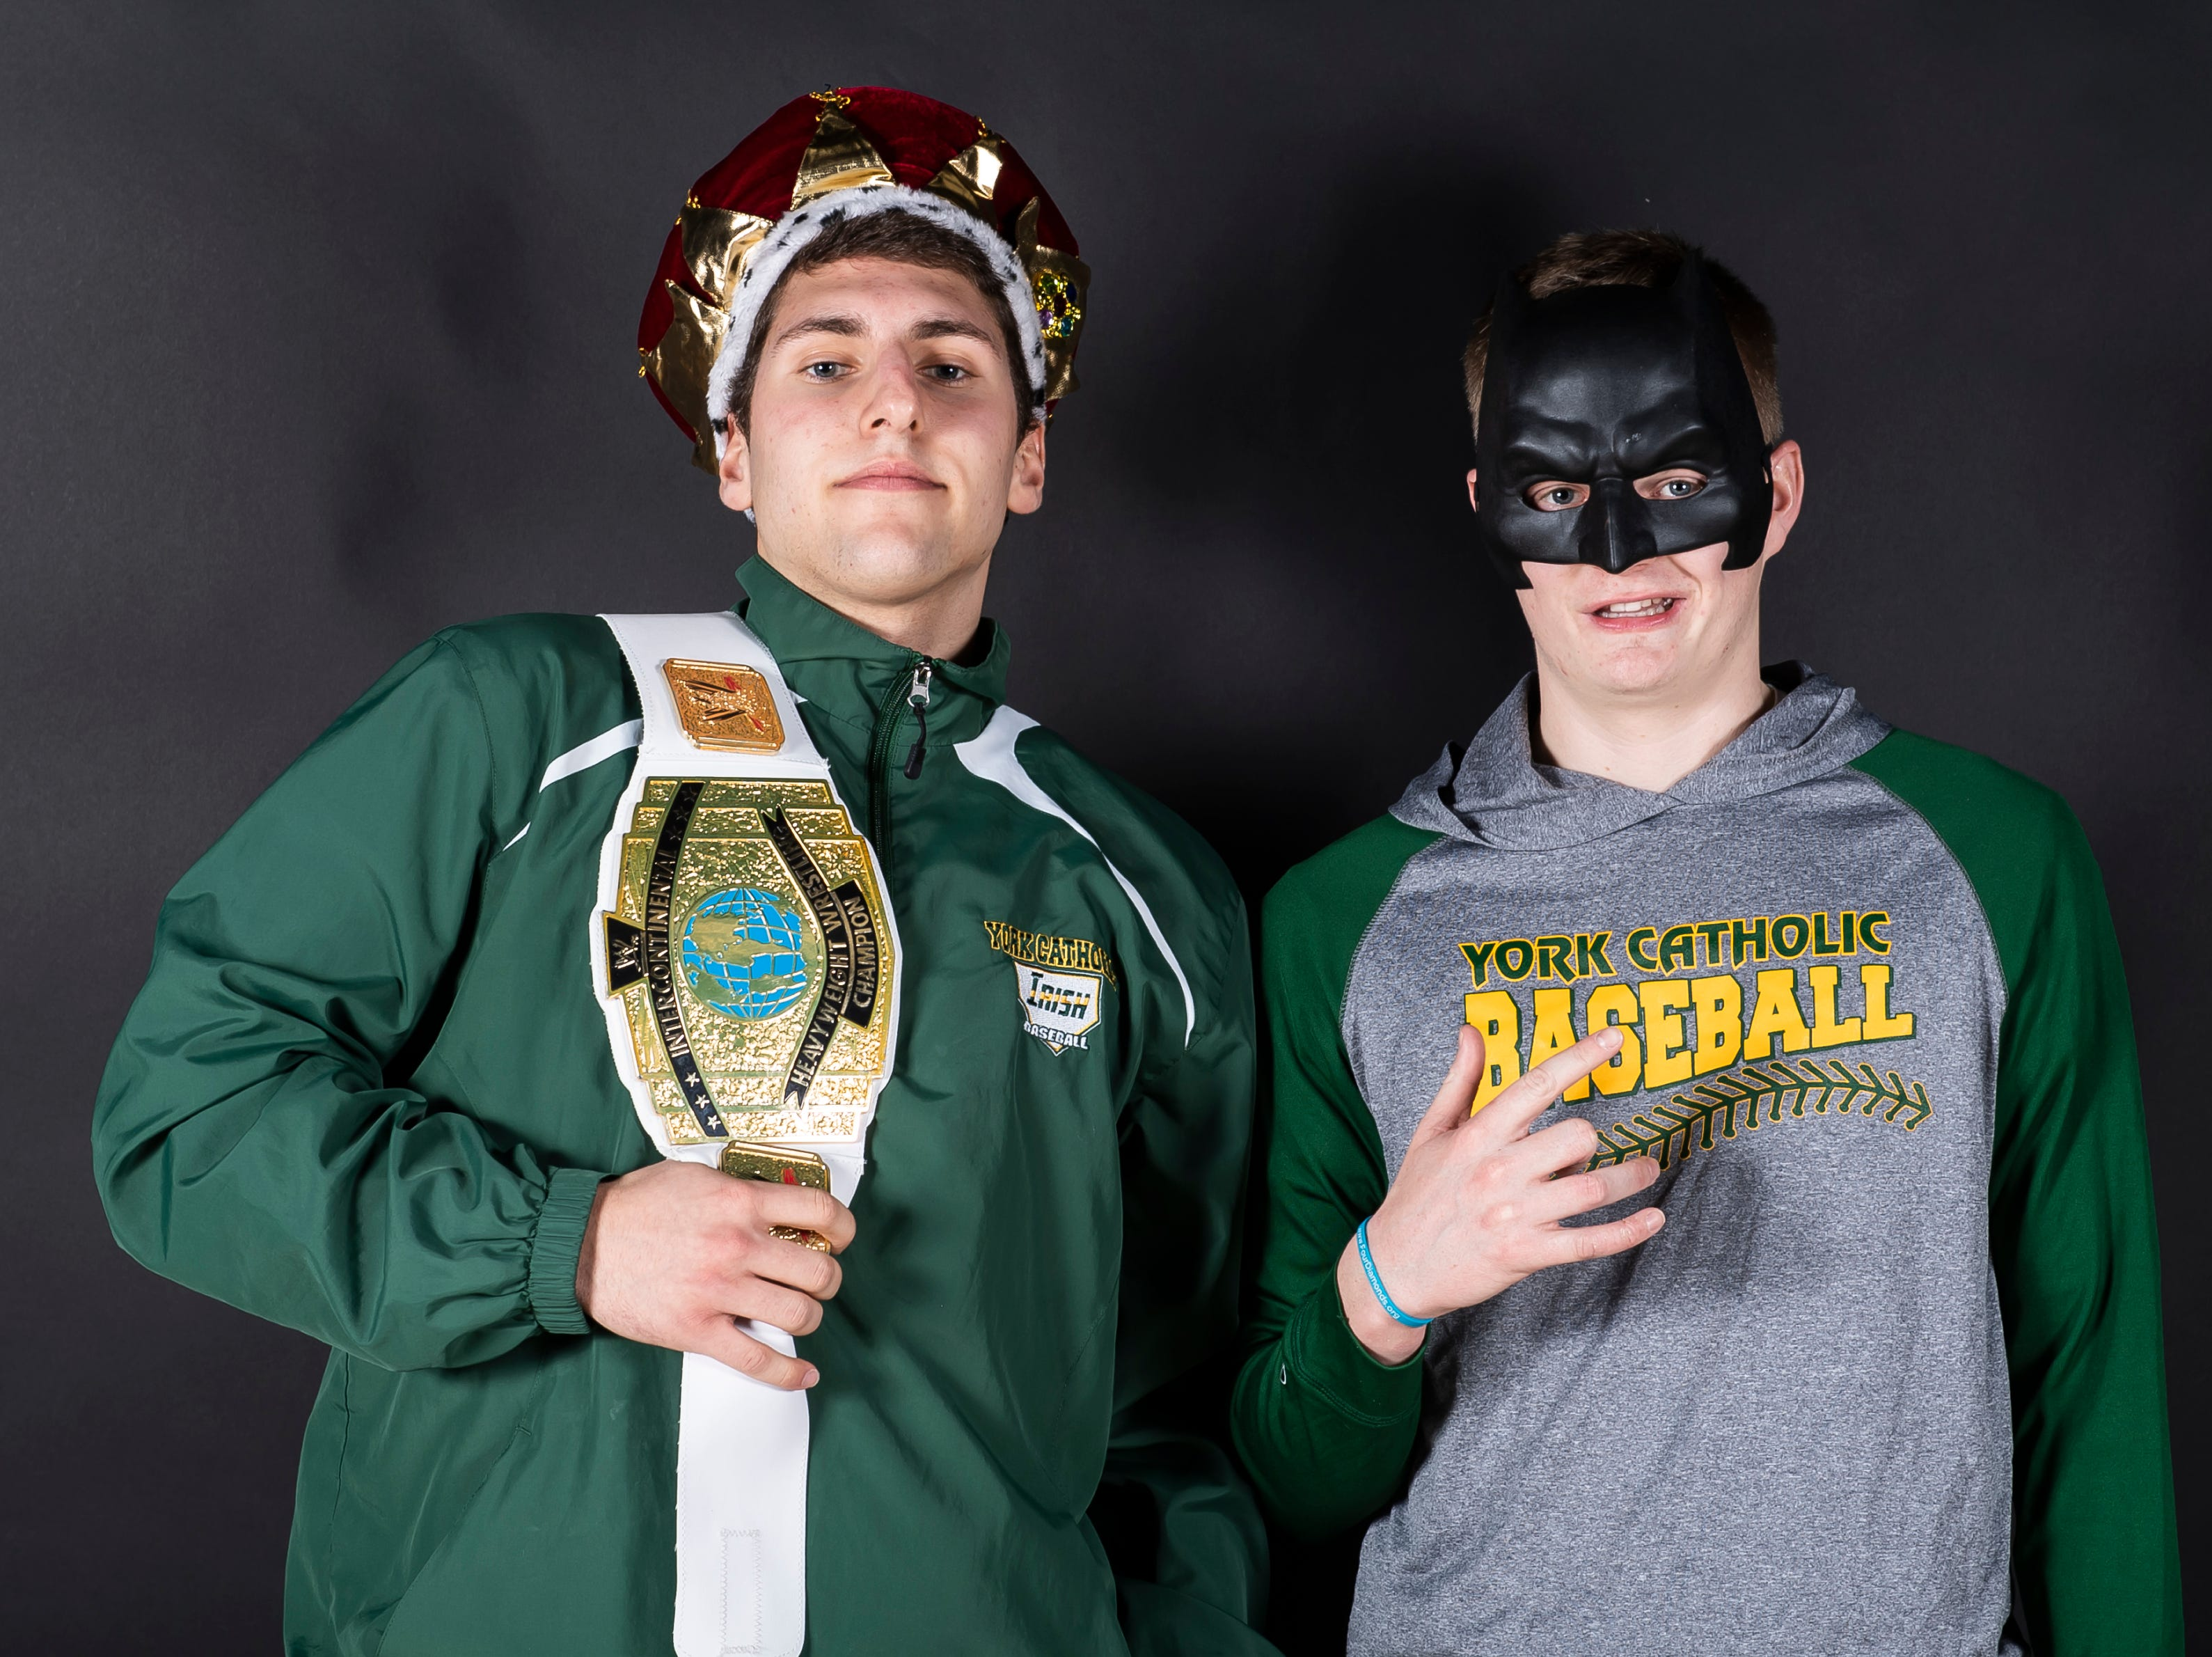 (From left) York Catholic baseball players Nick DeMarco and Bryan Bullen strike pose in the GameTimePA photo booth during spring sports media day in York Sunday, March 10, 2019.